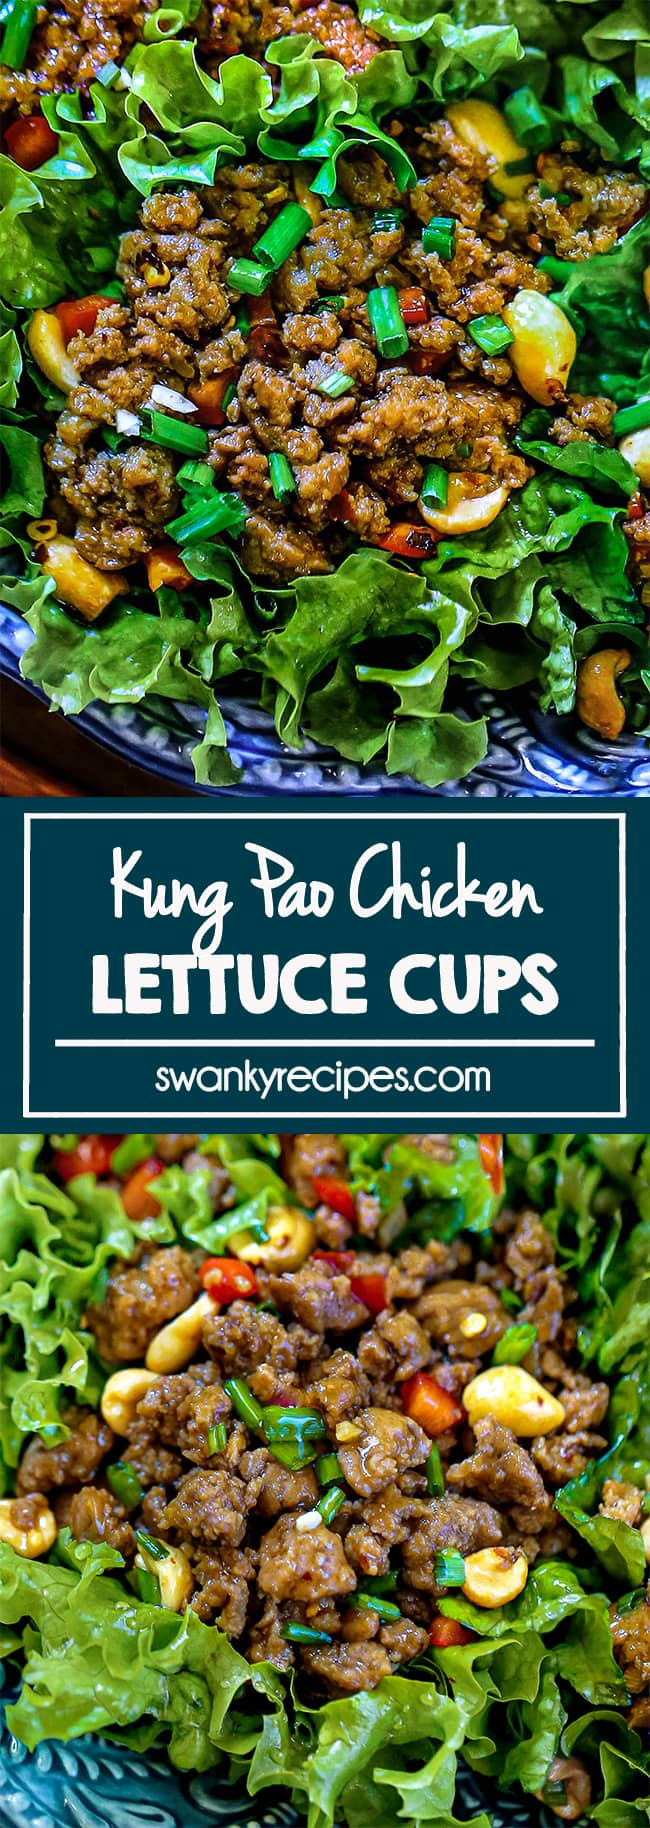 Kung Pao Chicken Lettuce Cups - A close up of kung pao chicken lettuce cups served on a blue platter. Ground chicken with peanuts, diced green onions, and diced red bell peppers garnished on top. Text in center reads kung pao chicken lettuce cups in blue boarder. Second image is a close up photo of the first image.